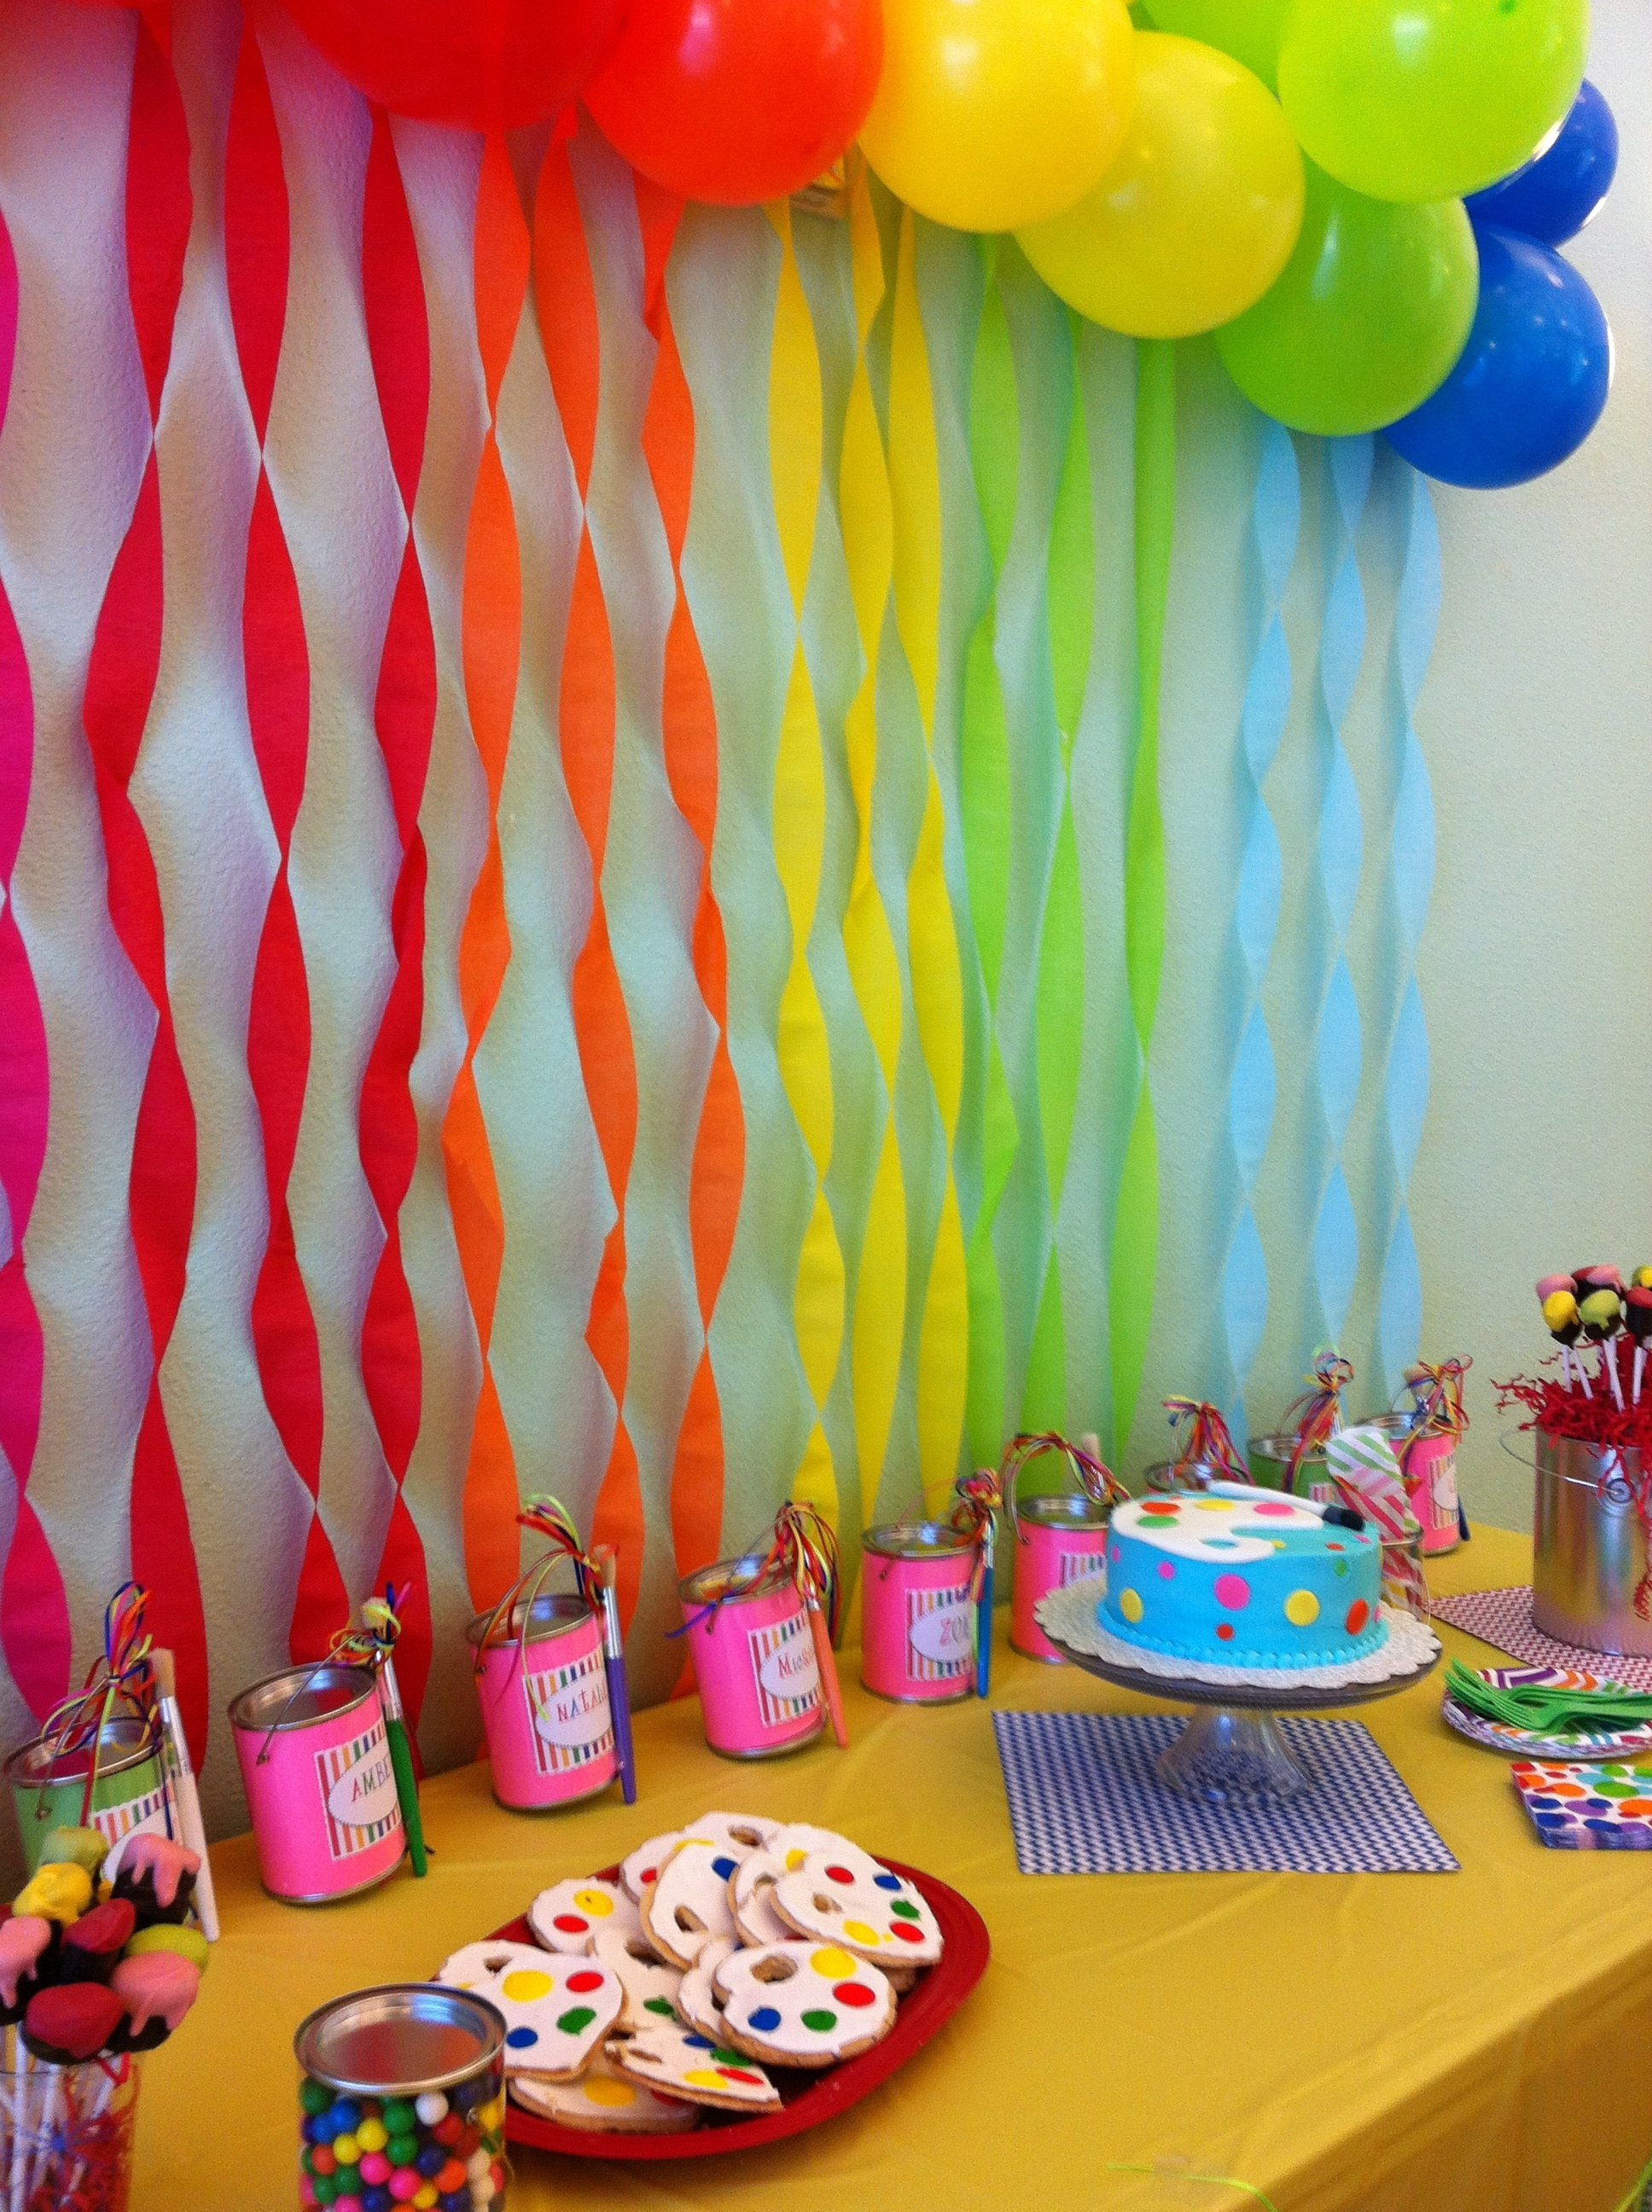 10 Fabulous 9 Year Old Girl Party Ideas 8 year old girl birthday art party art party pinterest art 13 2020